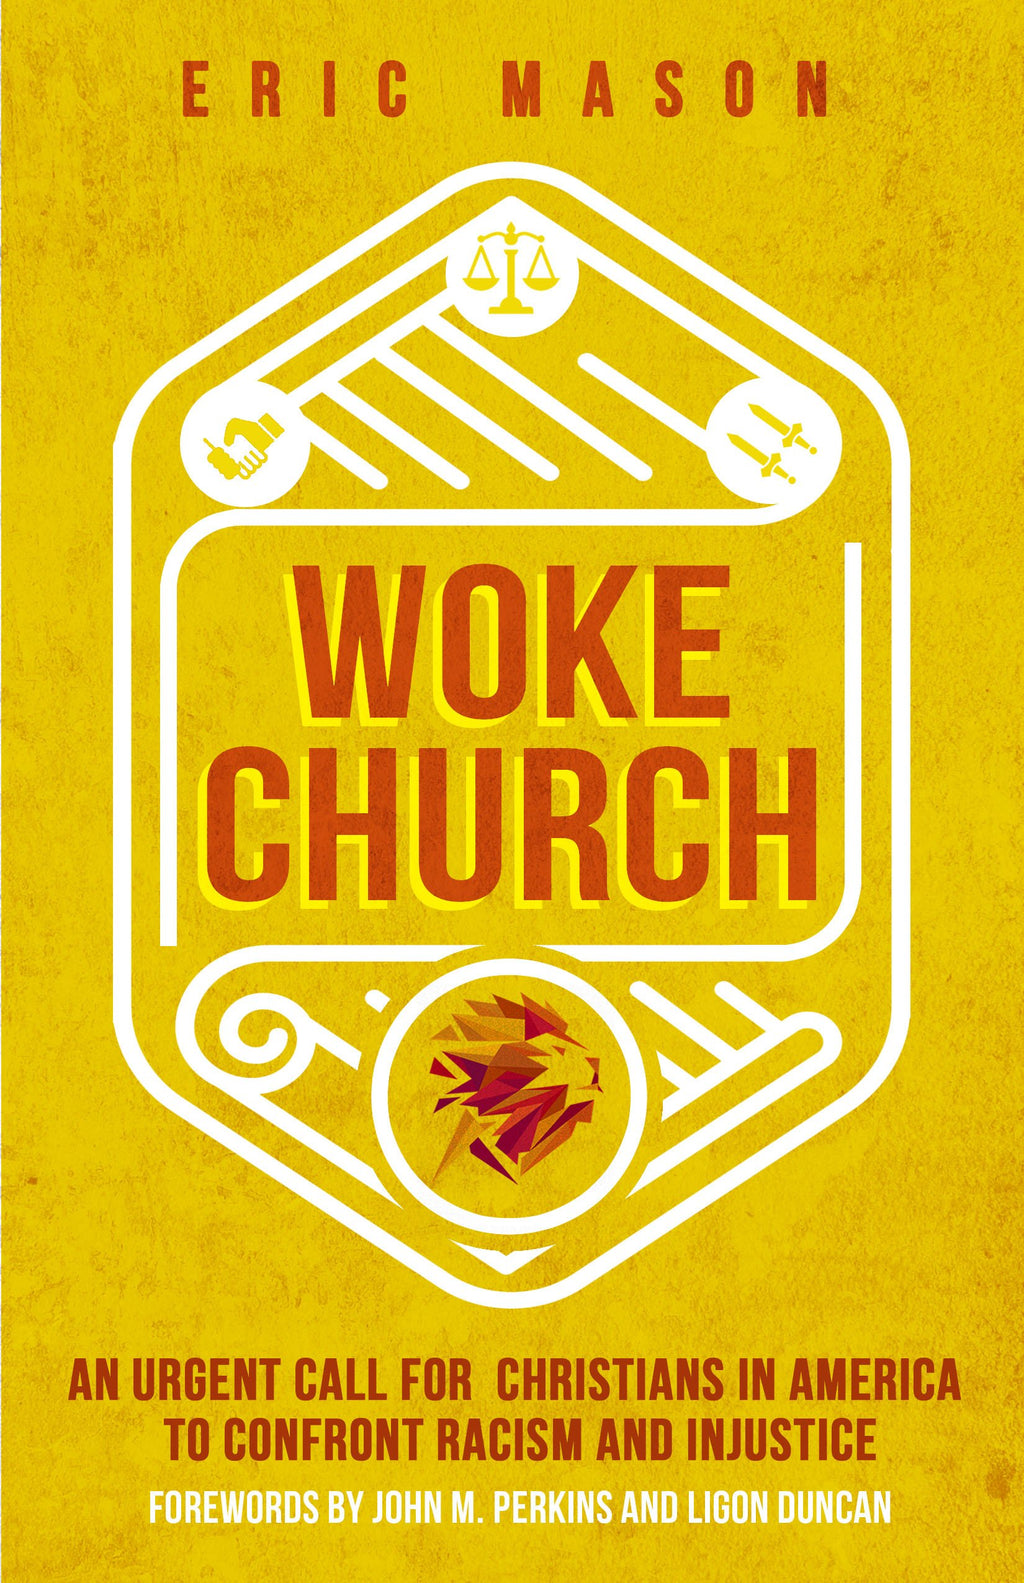 Woke Church: An Urgent Call for Christians in America to Confront Racism and Injustice - Mason, Eric; Perkins, John M (foreword by); Duncan, Ligon (foreword by) - 9780802416988